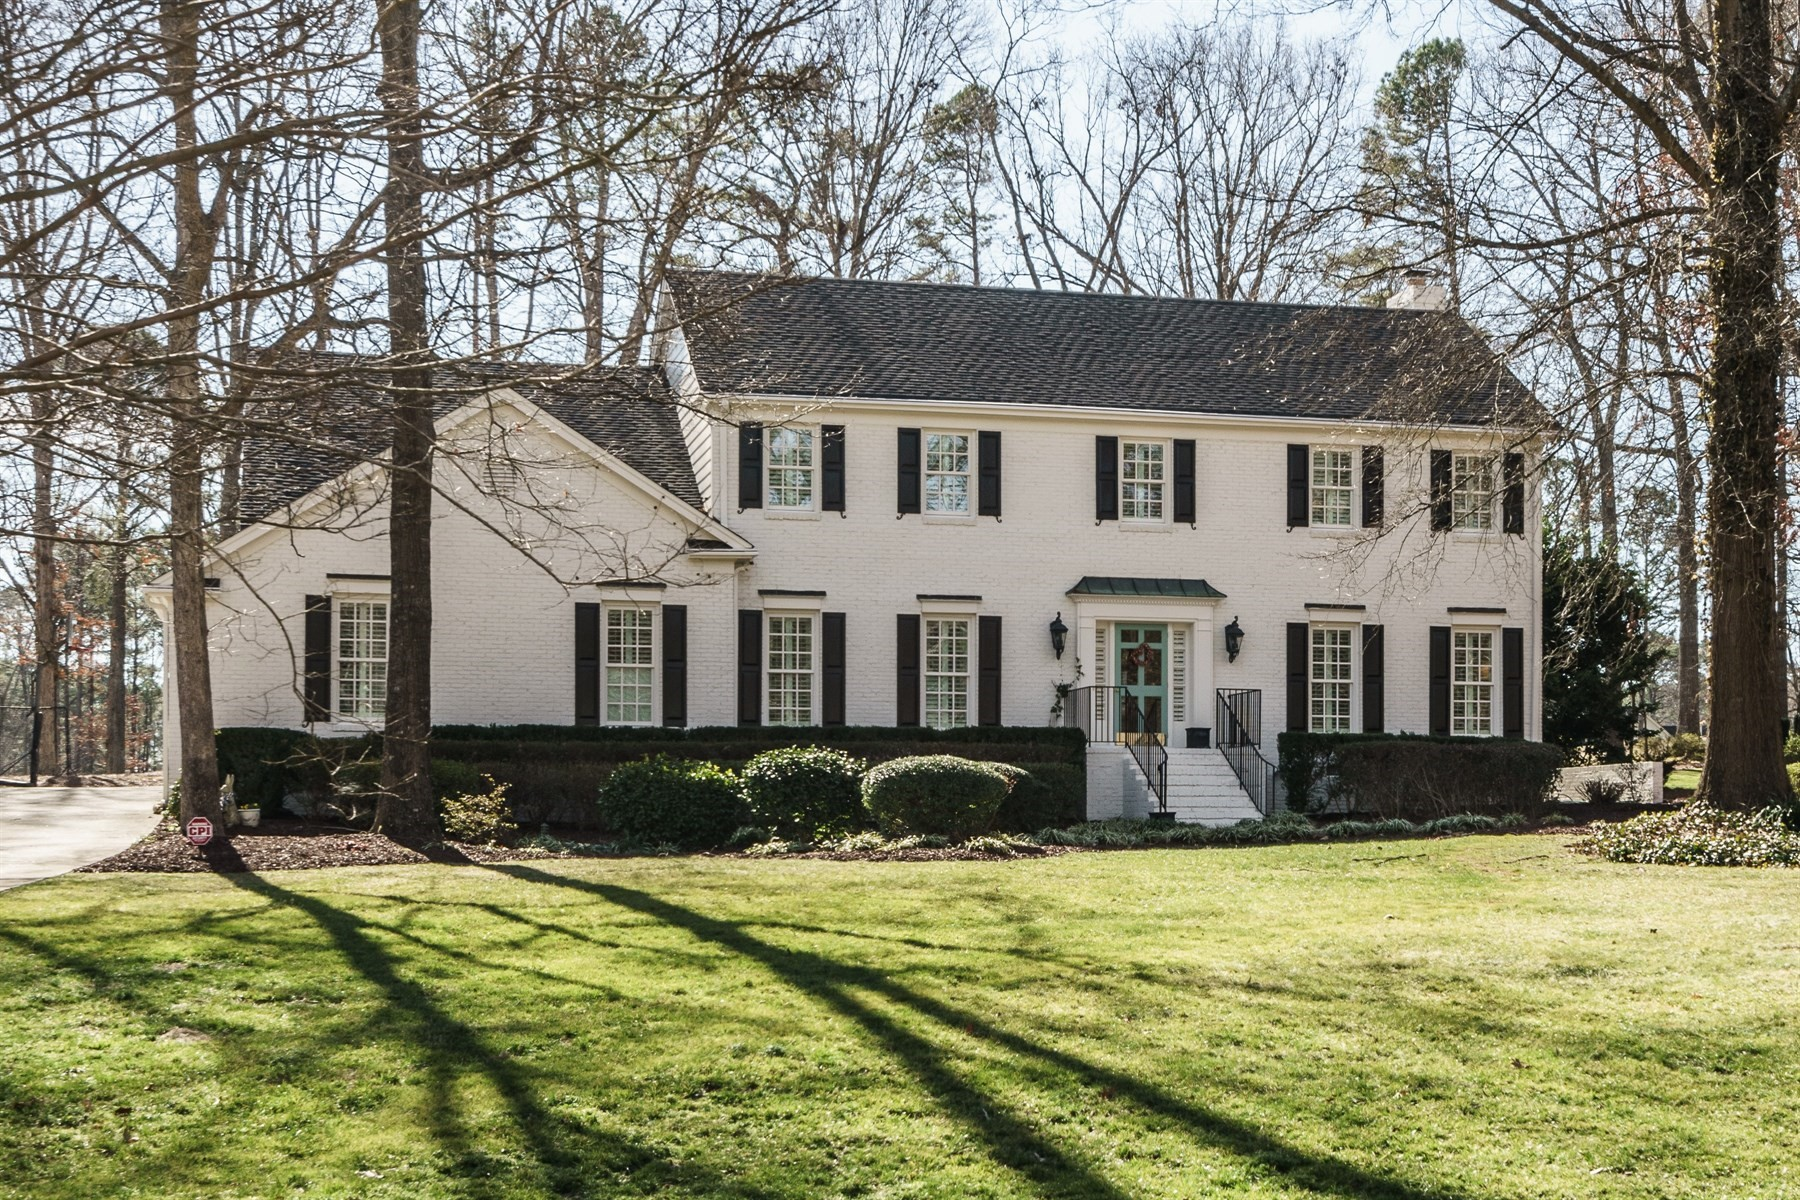 Single Family Home for Sale at North Ridge Estate 7116 North Ridge Drive Raleigh, North Carolina 27615 United StatesIn/Around: Cary, Chapel Hill, Durham